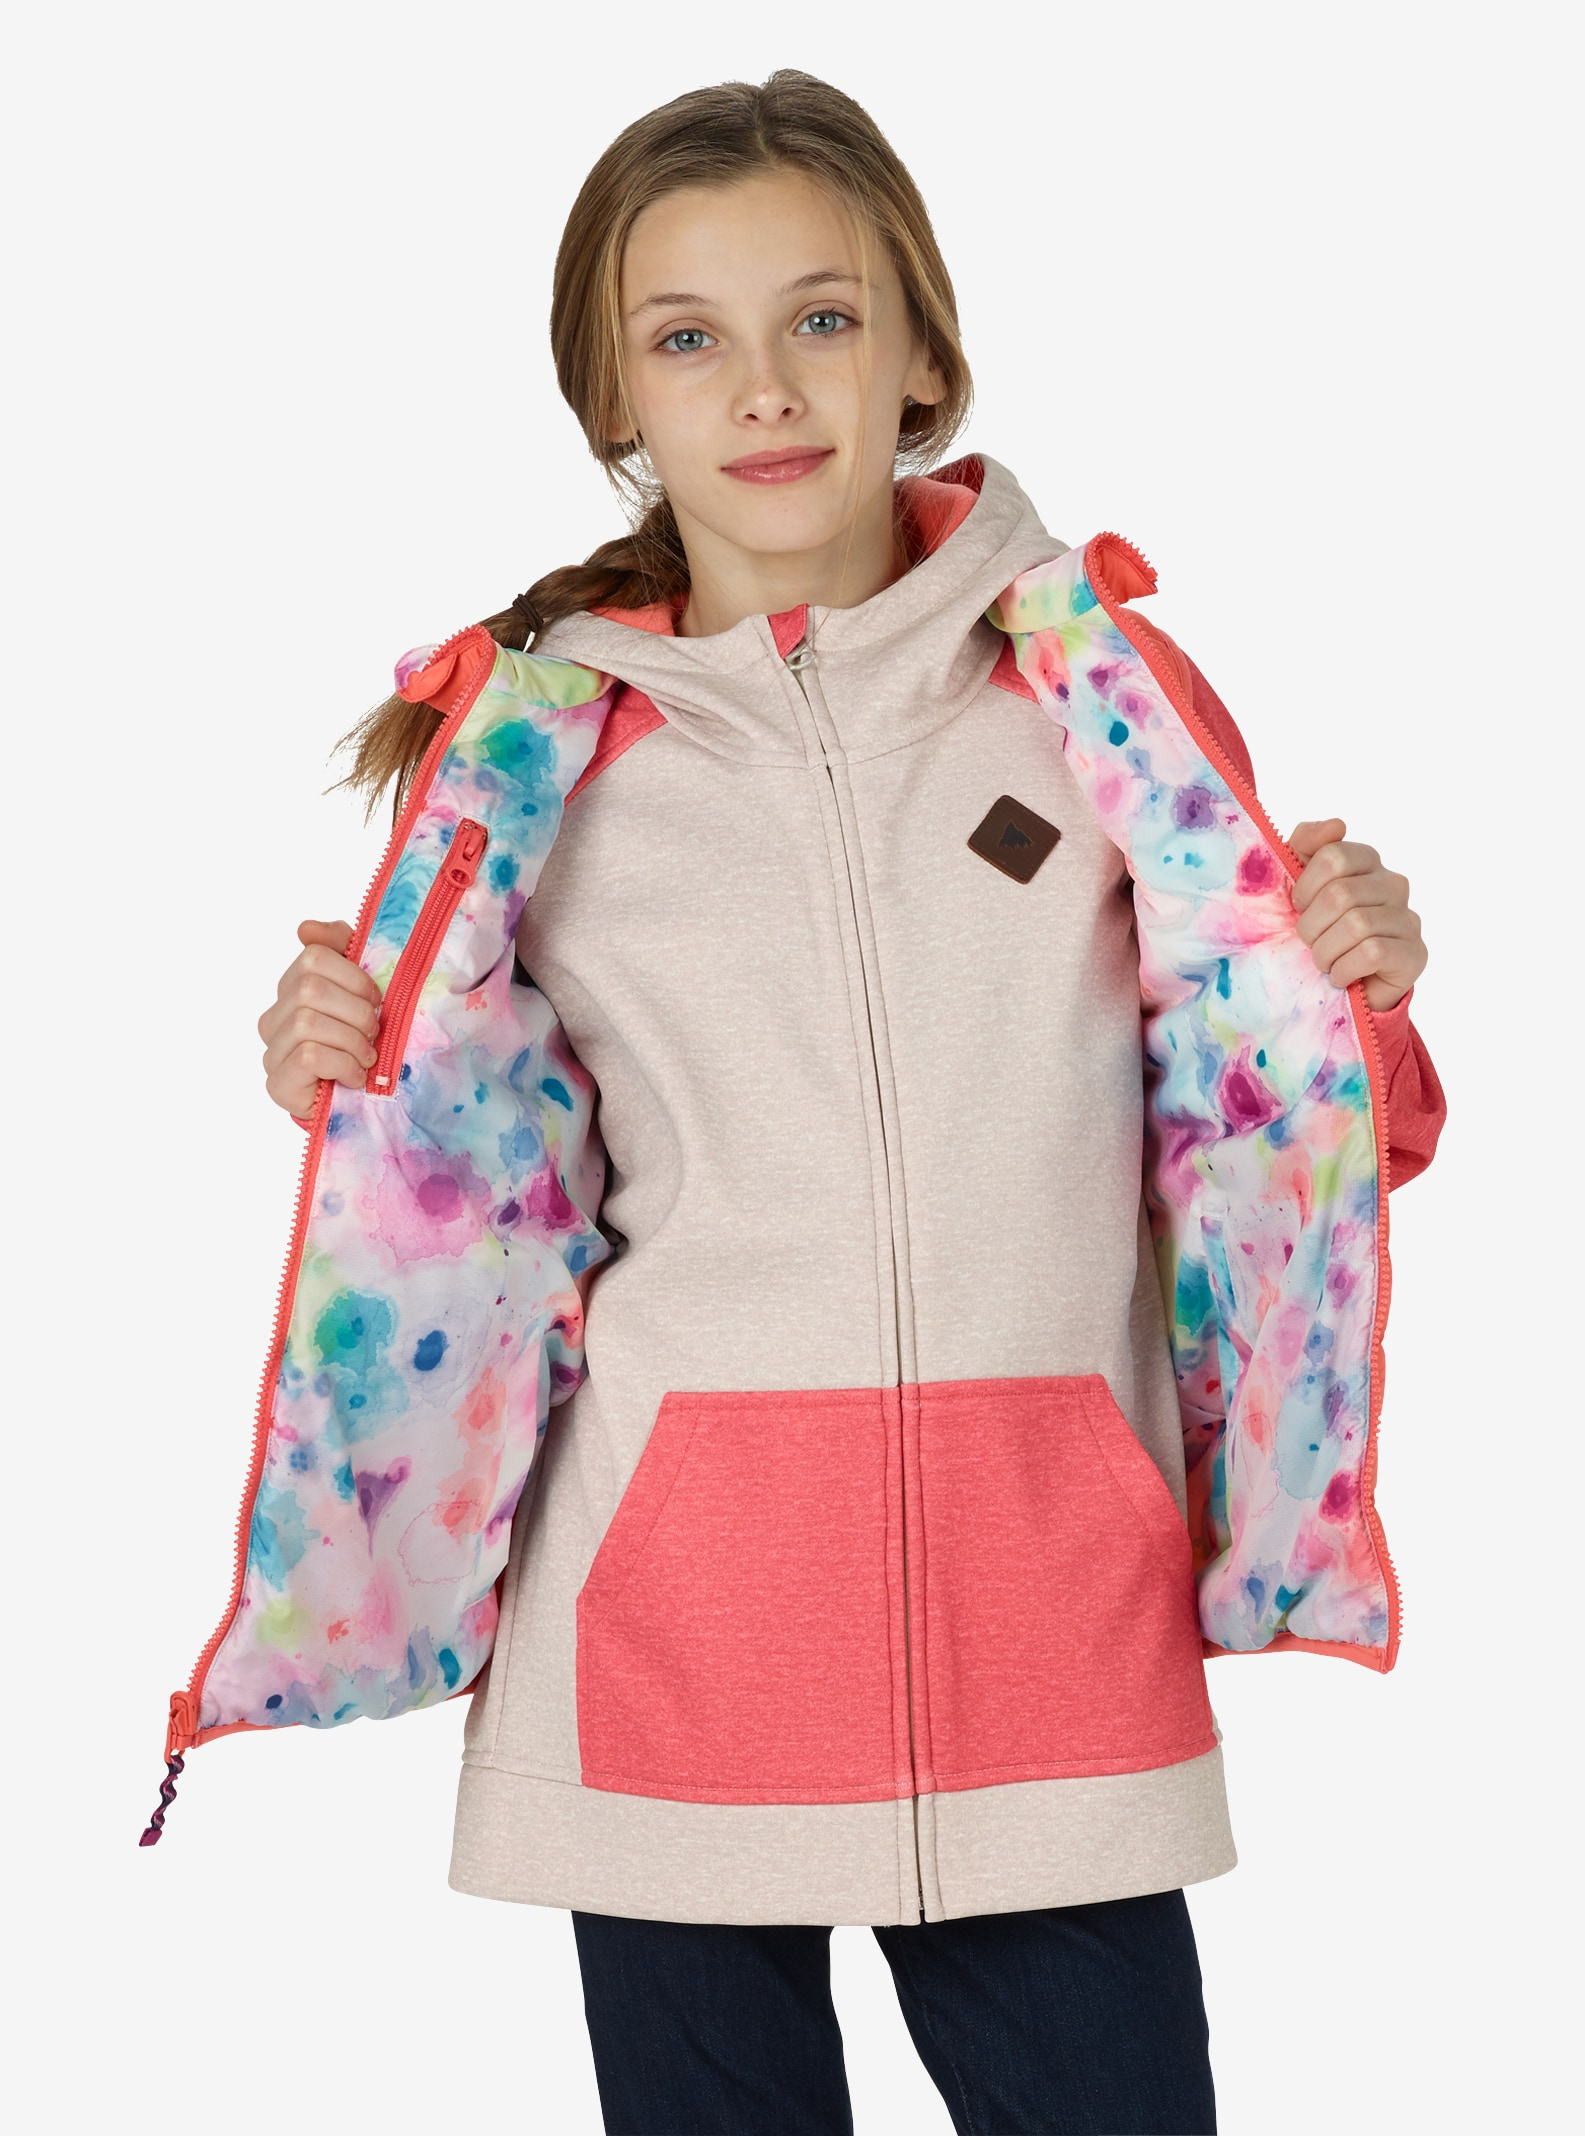 Kids' Burton Flex Puffy Vest shown in Georgia Peach / Drip Dye